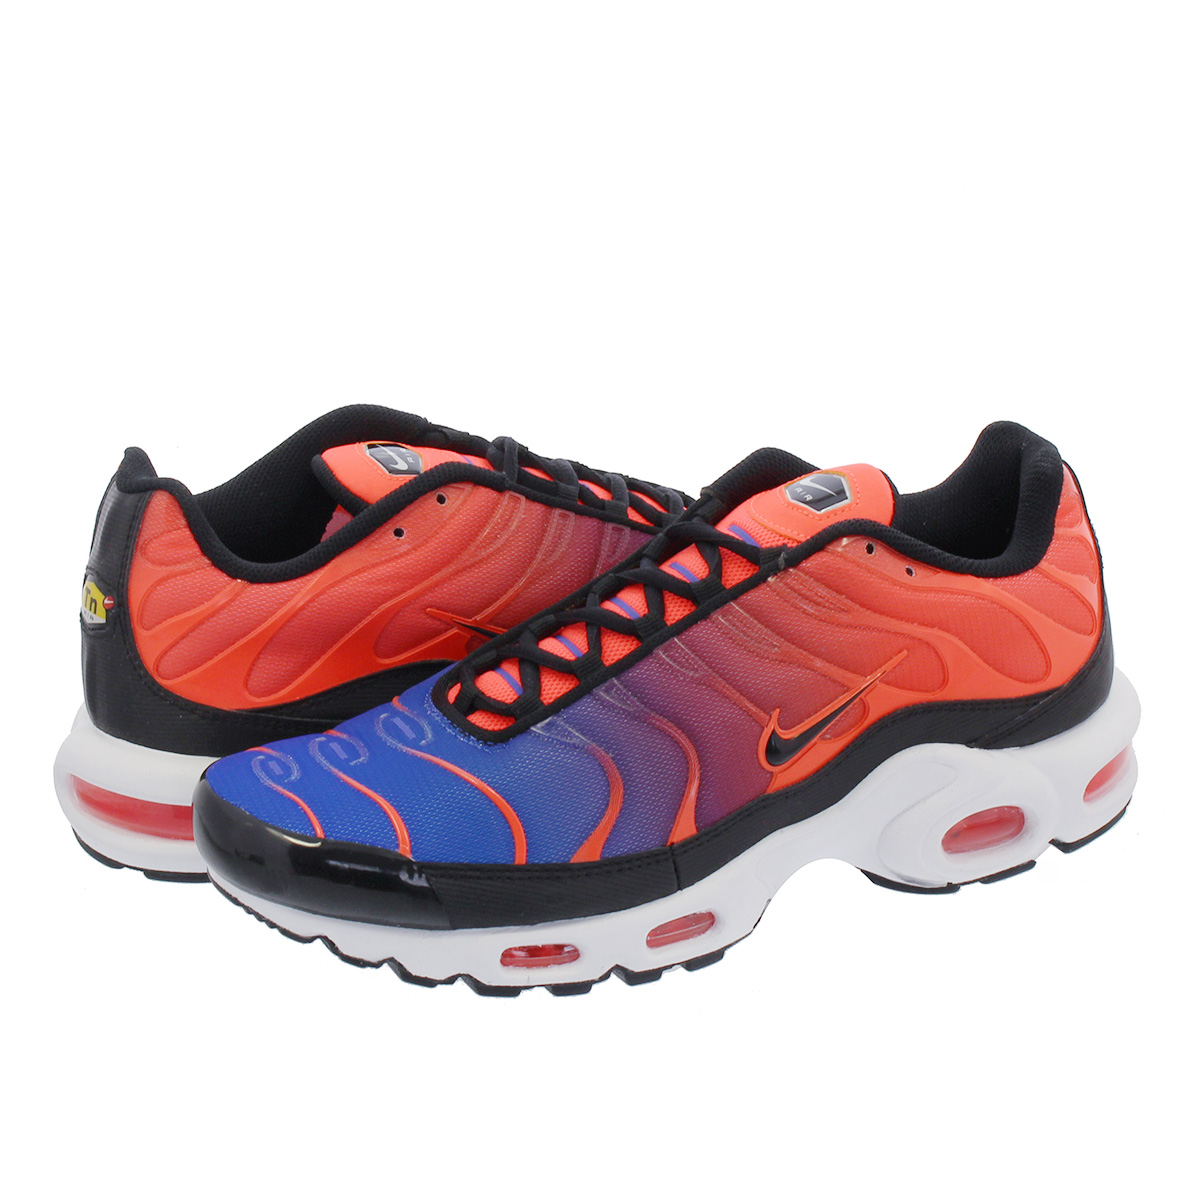 new product 944cb 3001d NIKE AIR MAX PLUS Kie Ney AMAX plus CRIMSON/RACER BLUE/WHITE/BLACK  852,630-800